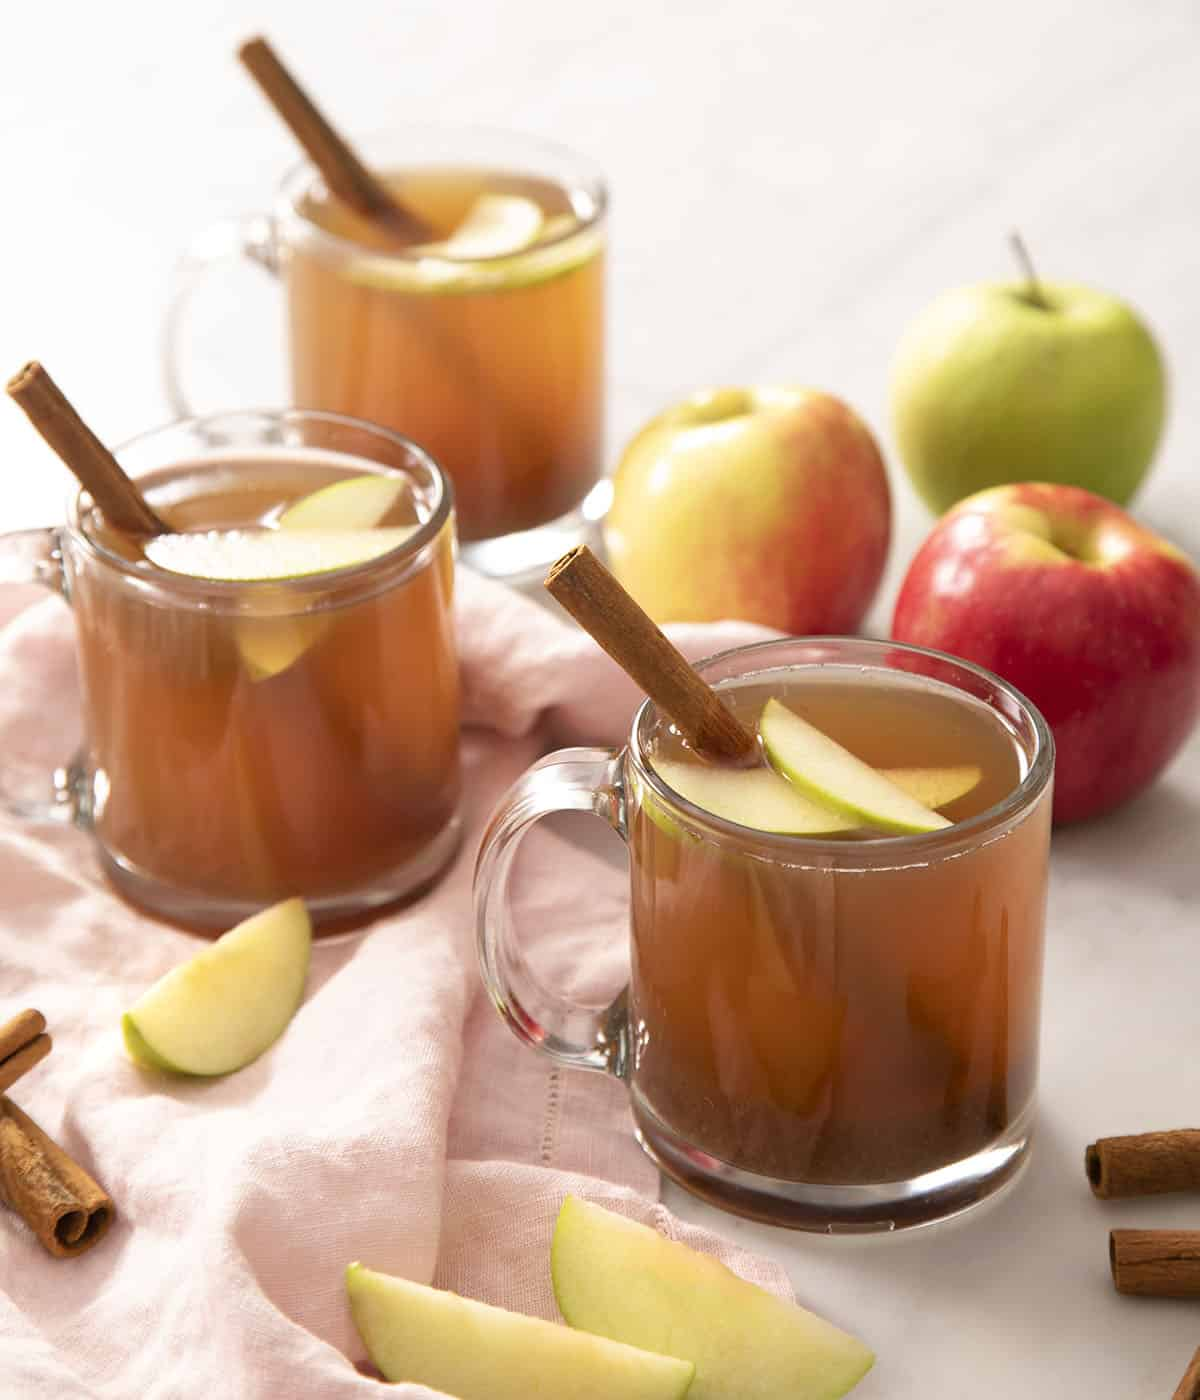 Three glasses of apple cider garnished with cinnamon sticks and apple slices.